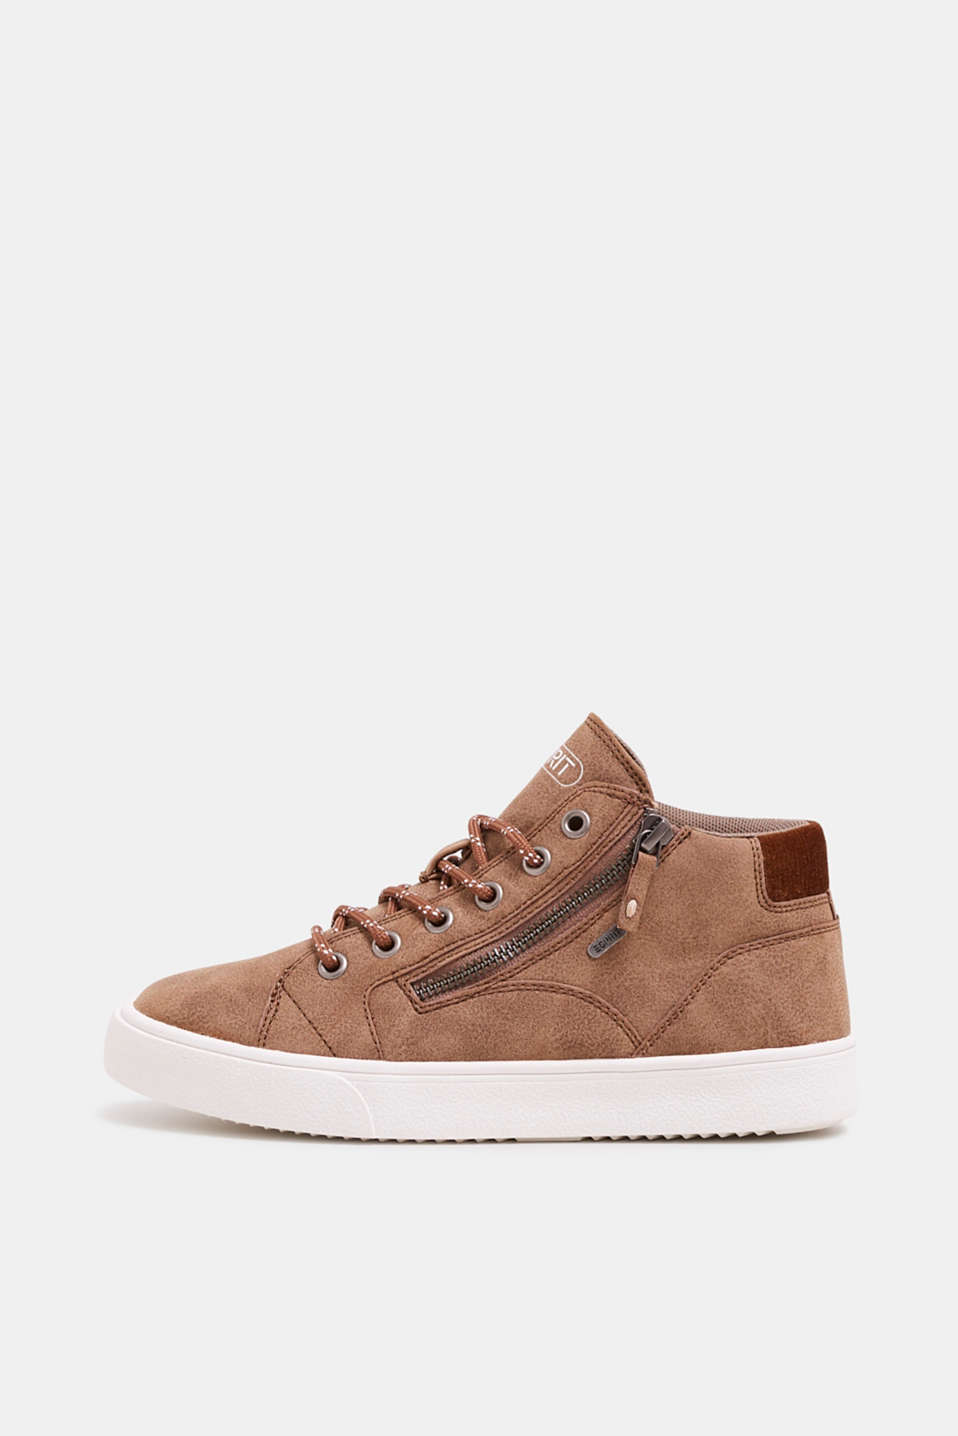 Esprit - High Top-Sneaker in veganer Leder-Optik